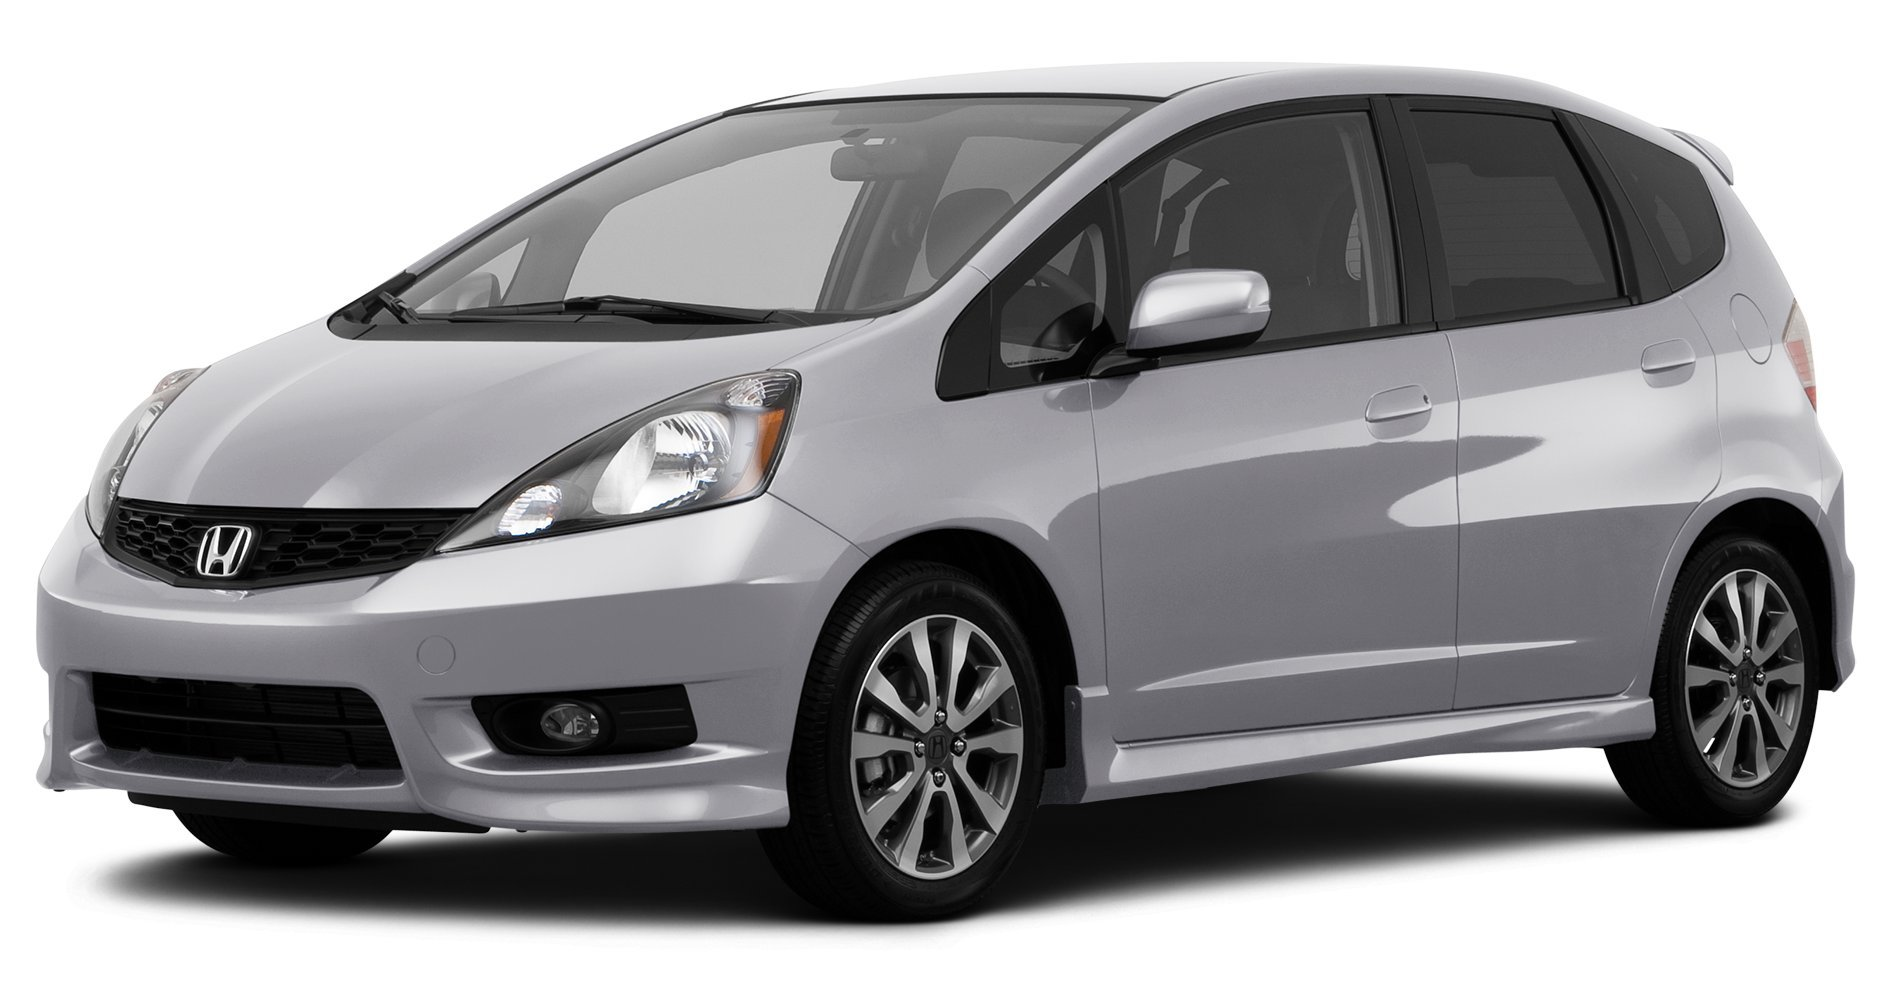 ... 2013 Honda Fit Sport, 5-Door Hatchback Automatic Transmission  w/Navigation ...